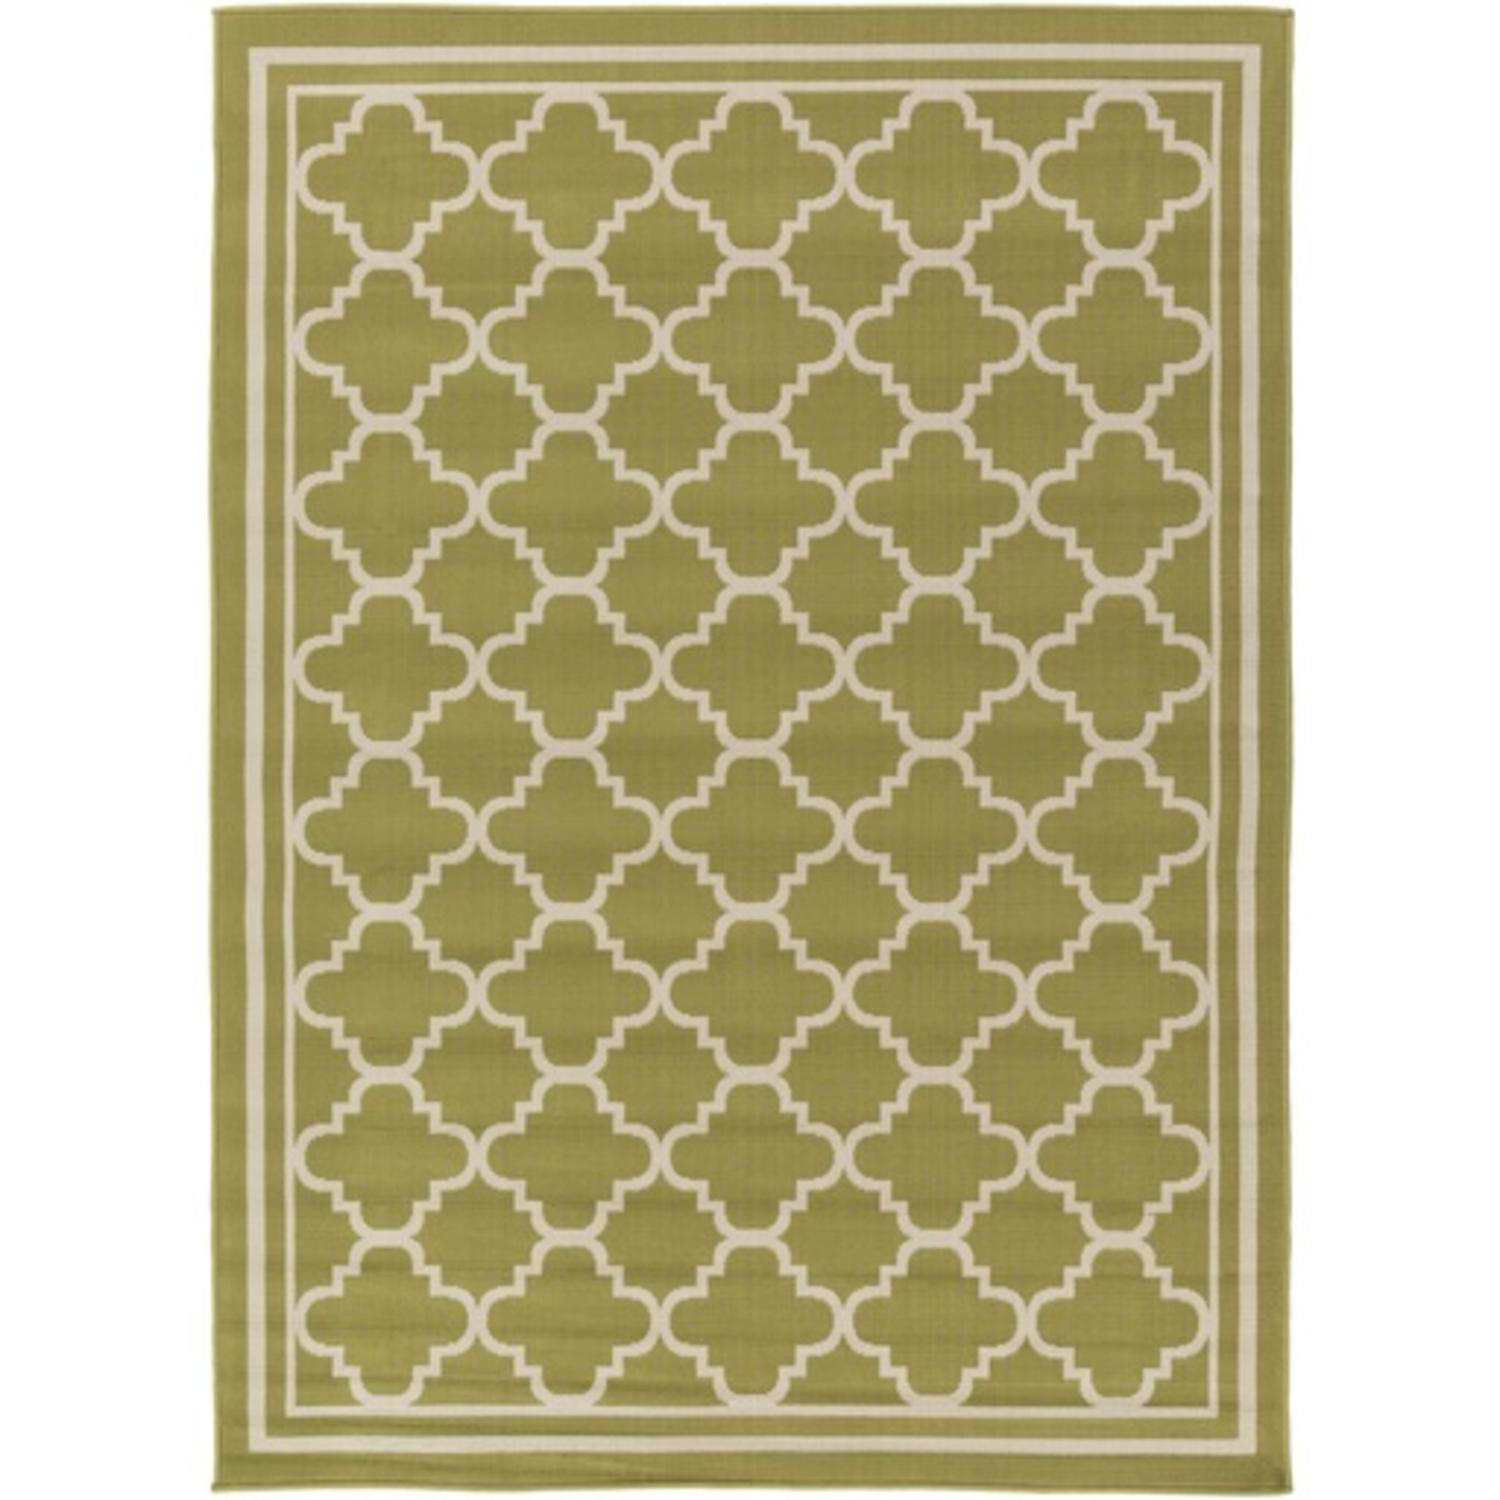 7.85' x 10.25' Chic Trellis Patterned Green and White Area Throw Rug